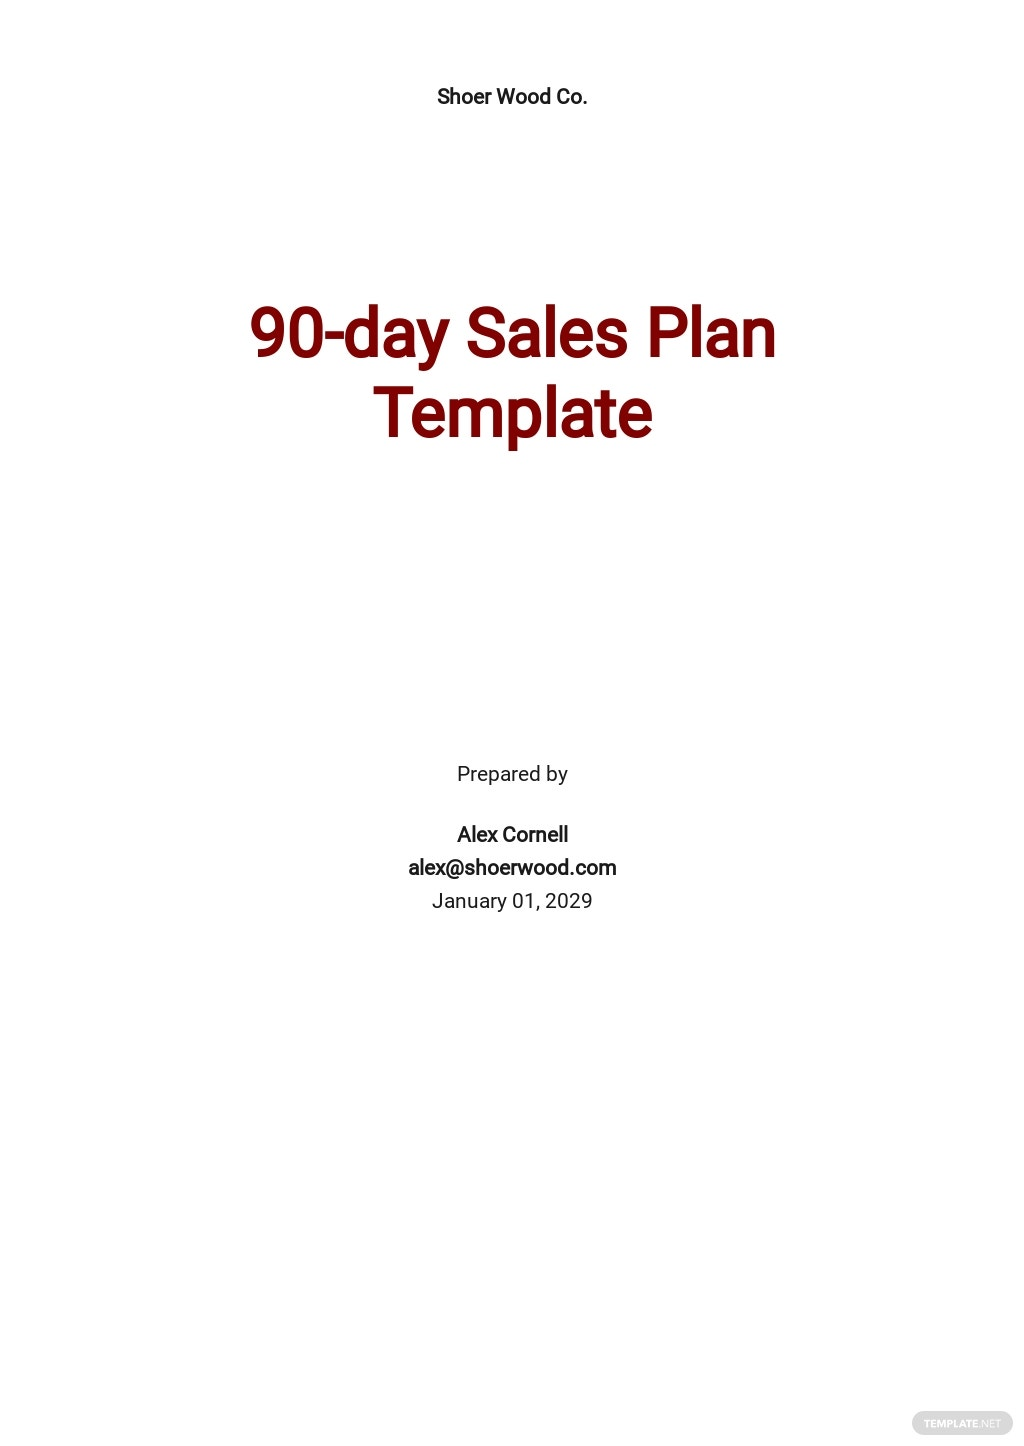 90-day Sales Plan Template